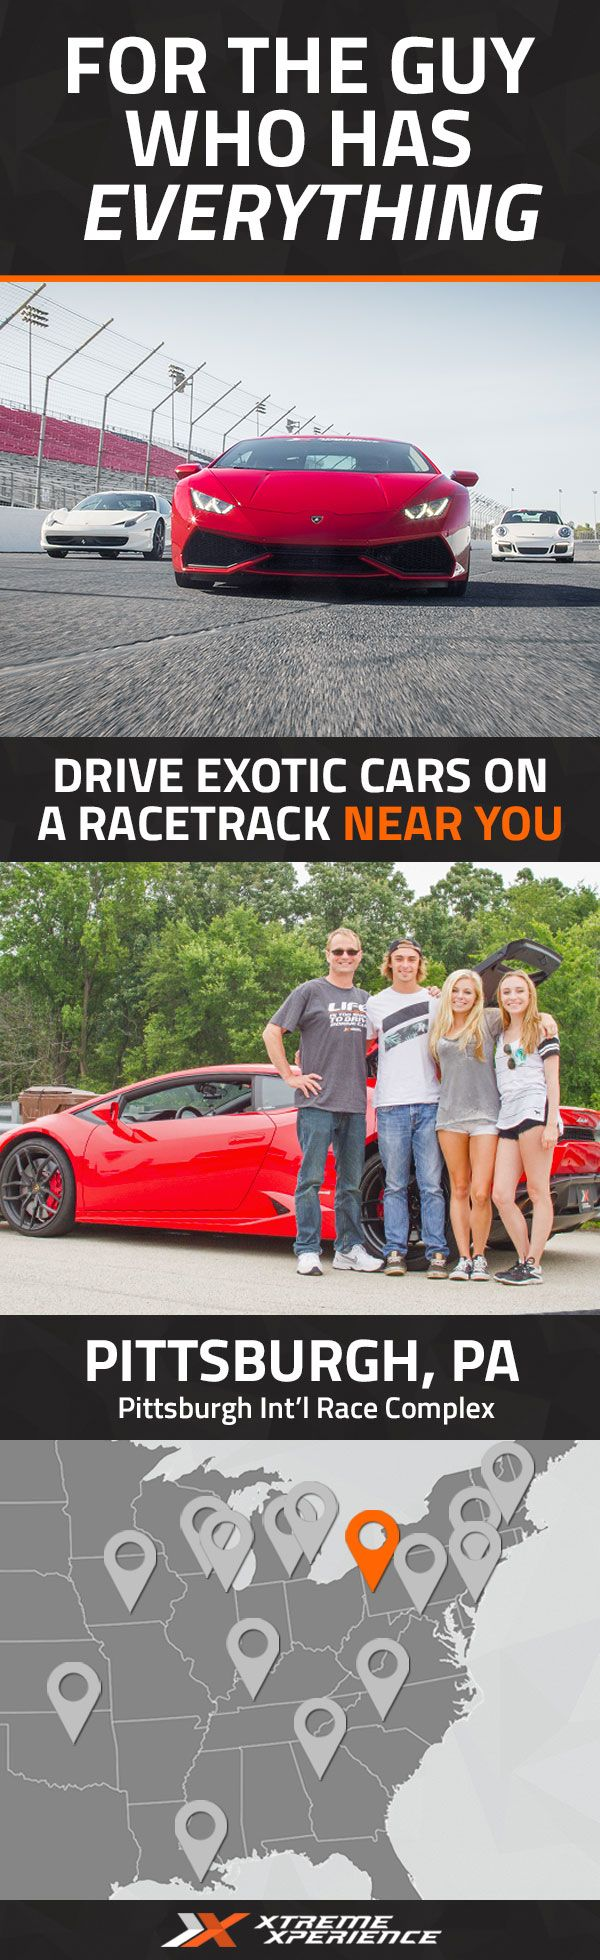 This Father's Day, it's never been easier to give a gift to the guy who has everything. Driving a Ferrari, Lamborghini or other exotic sports car on a racetrack is a unique gift idea that is guaranteed to leave a smile on his face, a good story to tell and a life-long memory. Xtreme Xperience brings the thrill of a lifetime to you at Pittsburgh International Race Complex from April 8-10, June 10-12 & October 7-9, 2016. Reserve your Supercar Xperience today for as low as $219. Space is…